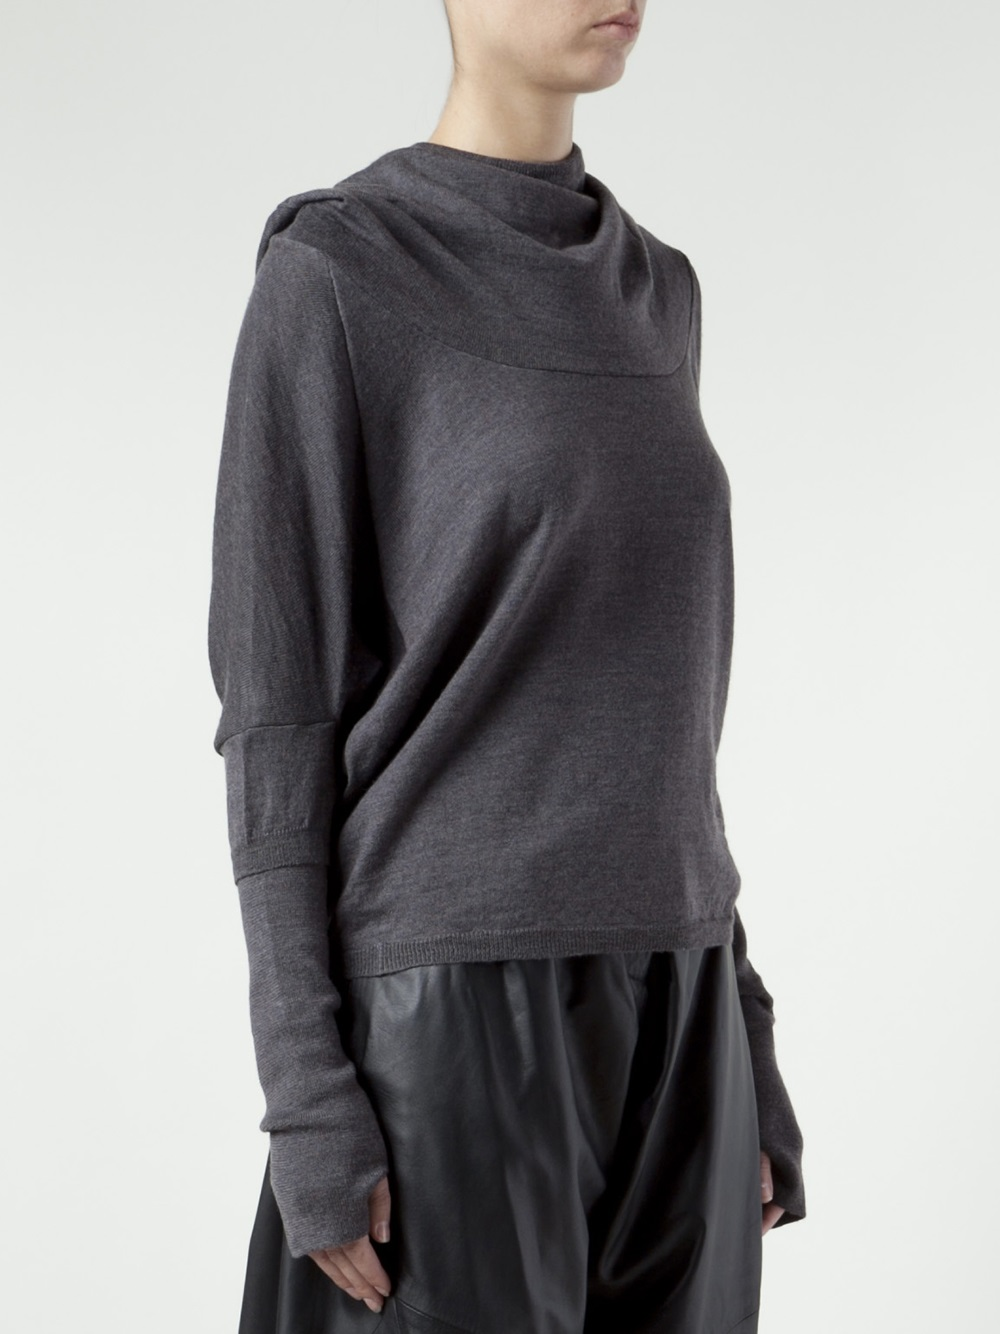 Vivienne westwood red label Cowl Neck Sweater in Gray | Lyst